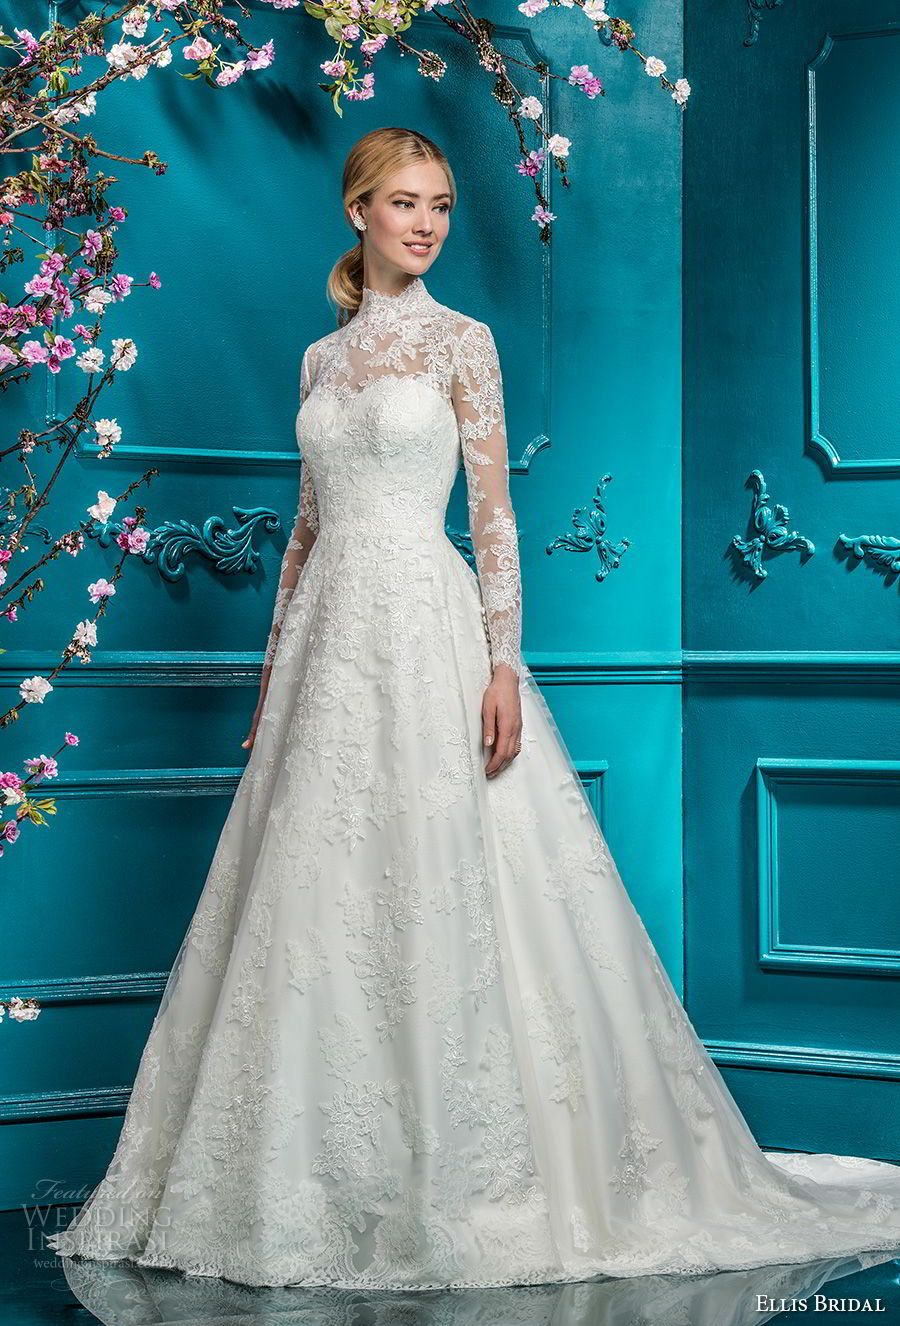 Ellis bridals wedding dresses u ucduskud bridal collection